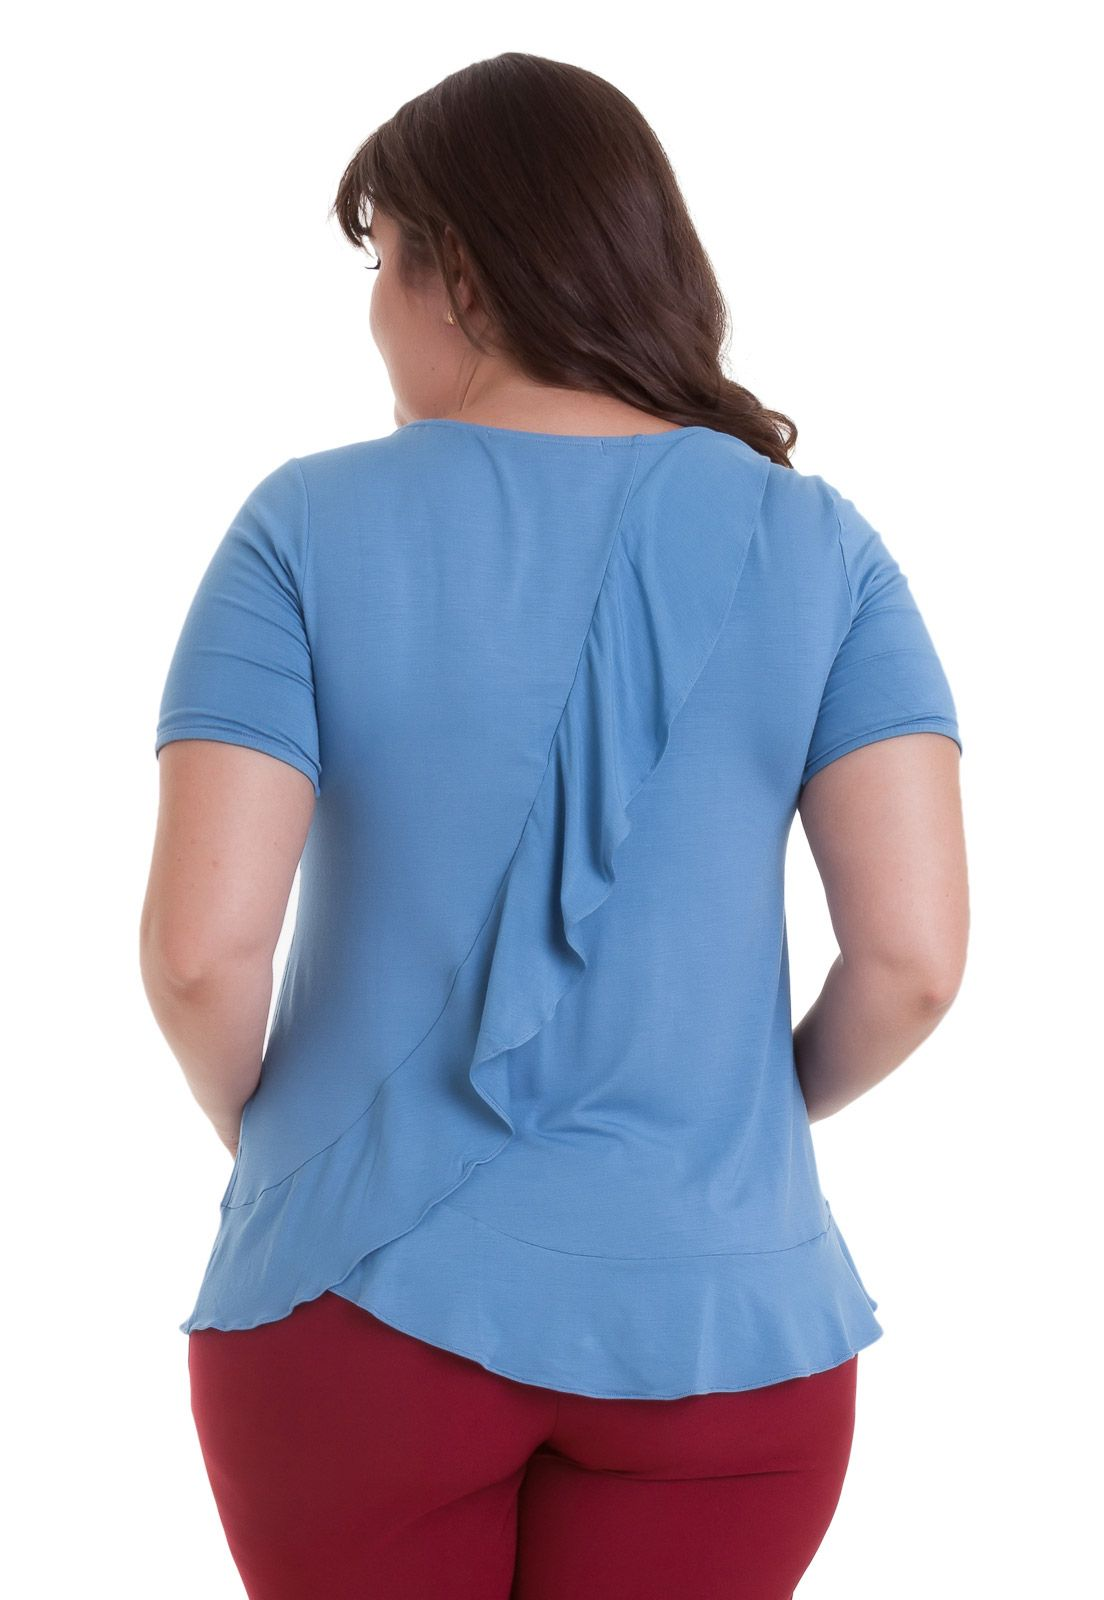 Blusa plus size Cotton Colors babado na barra e costas